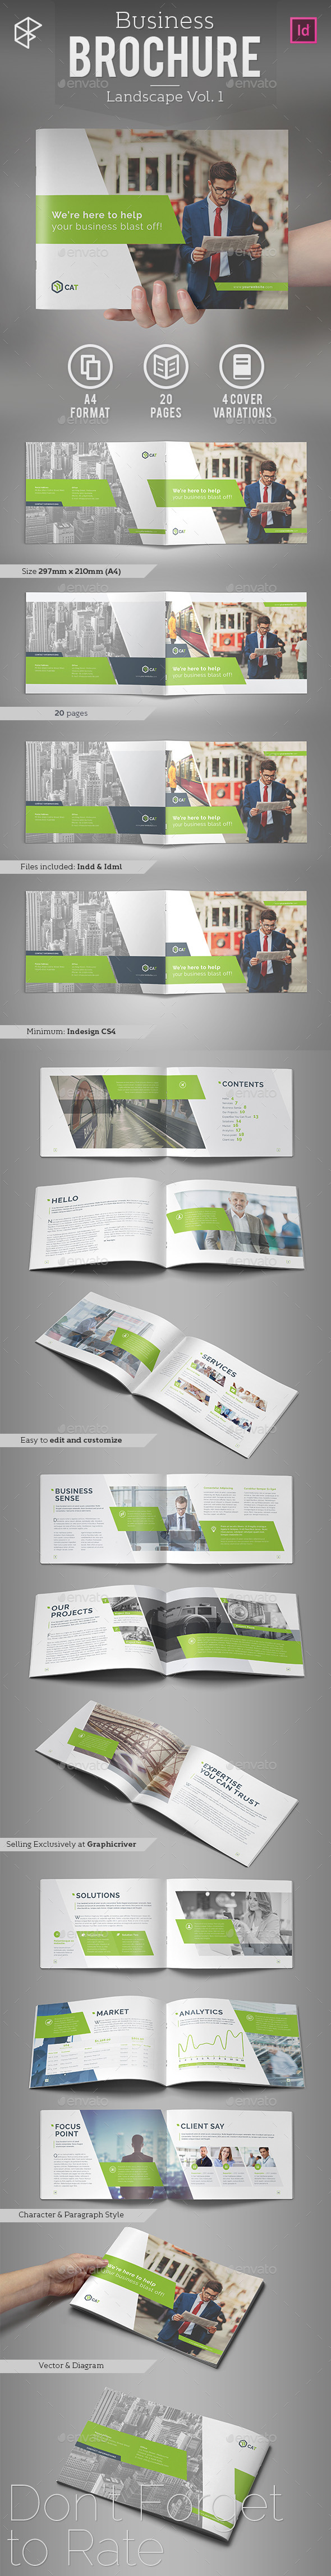 Business Brochure - Landscape Vol. 1 - Corporate Brochures